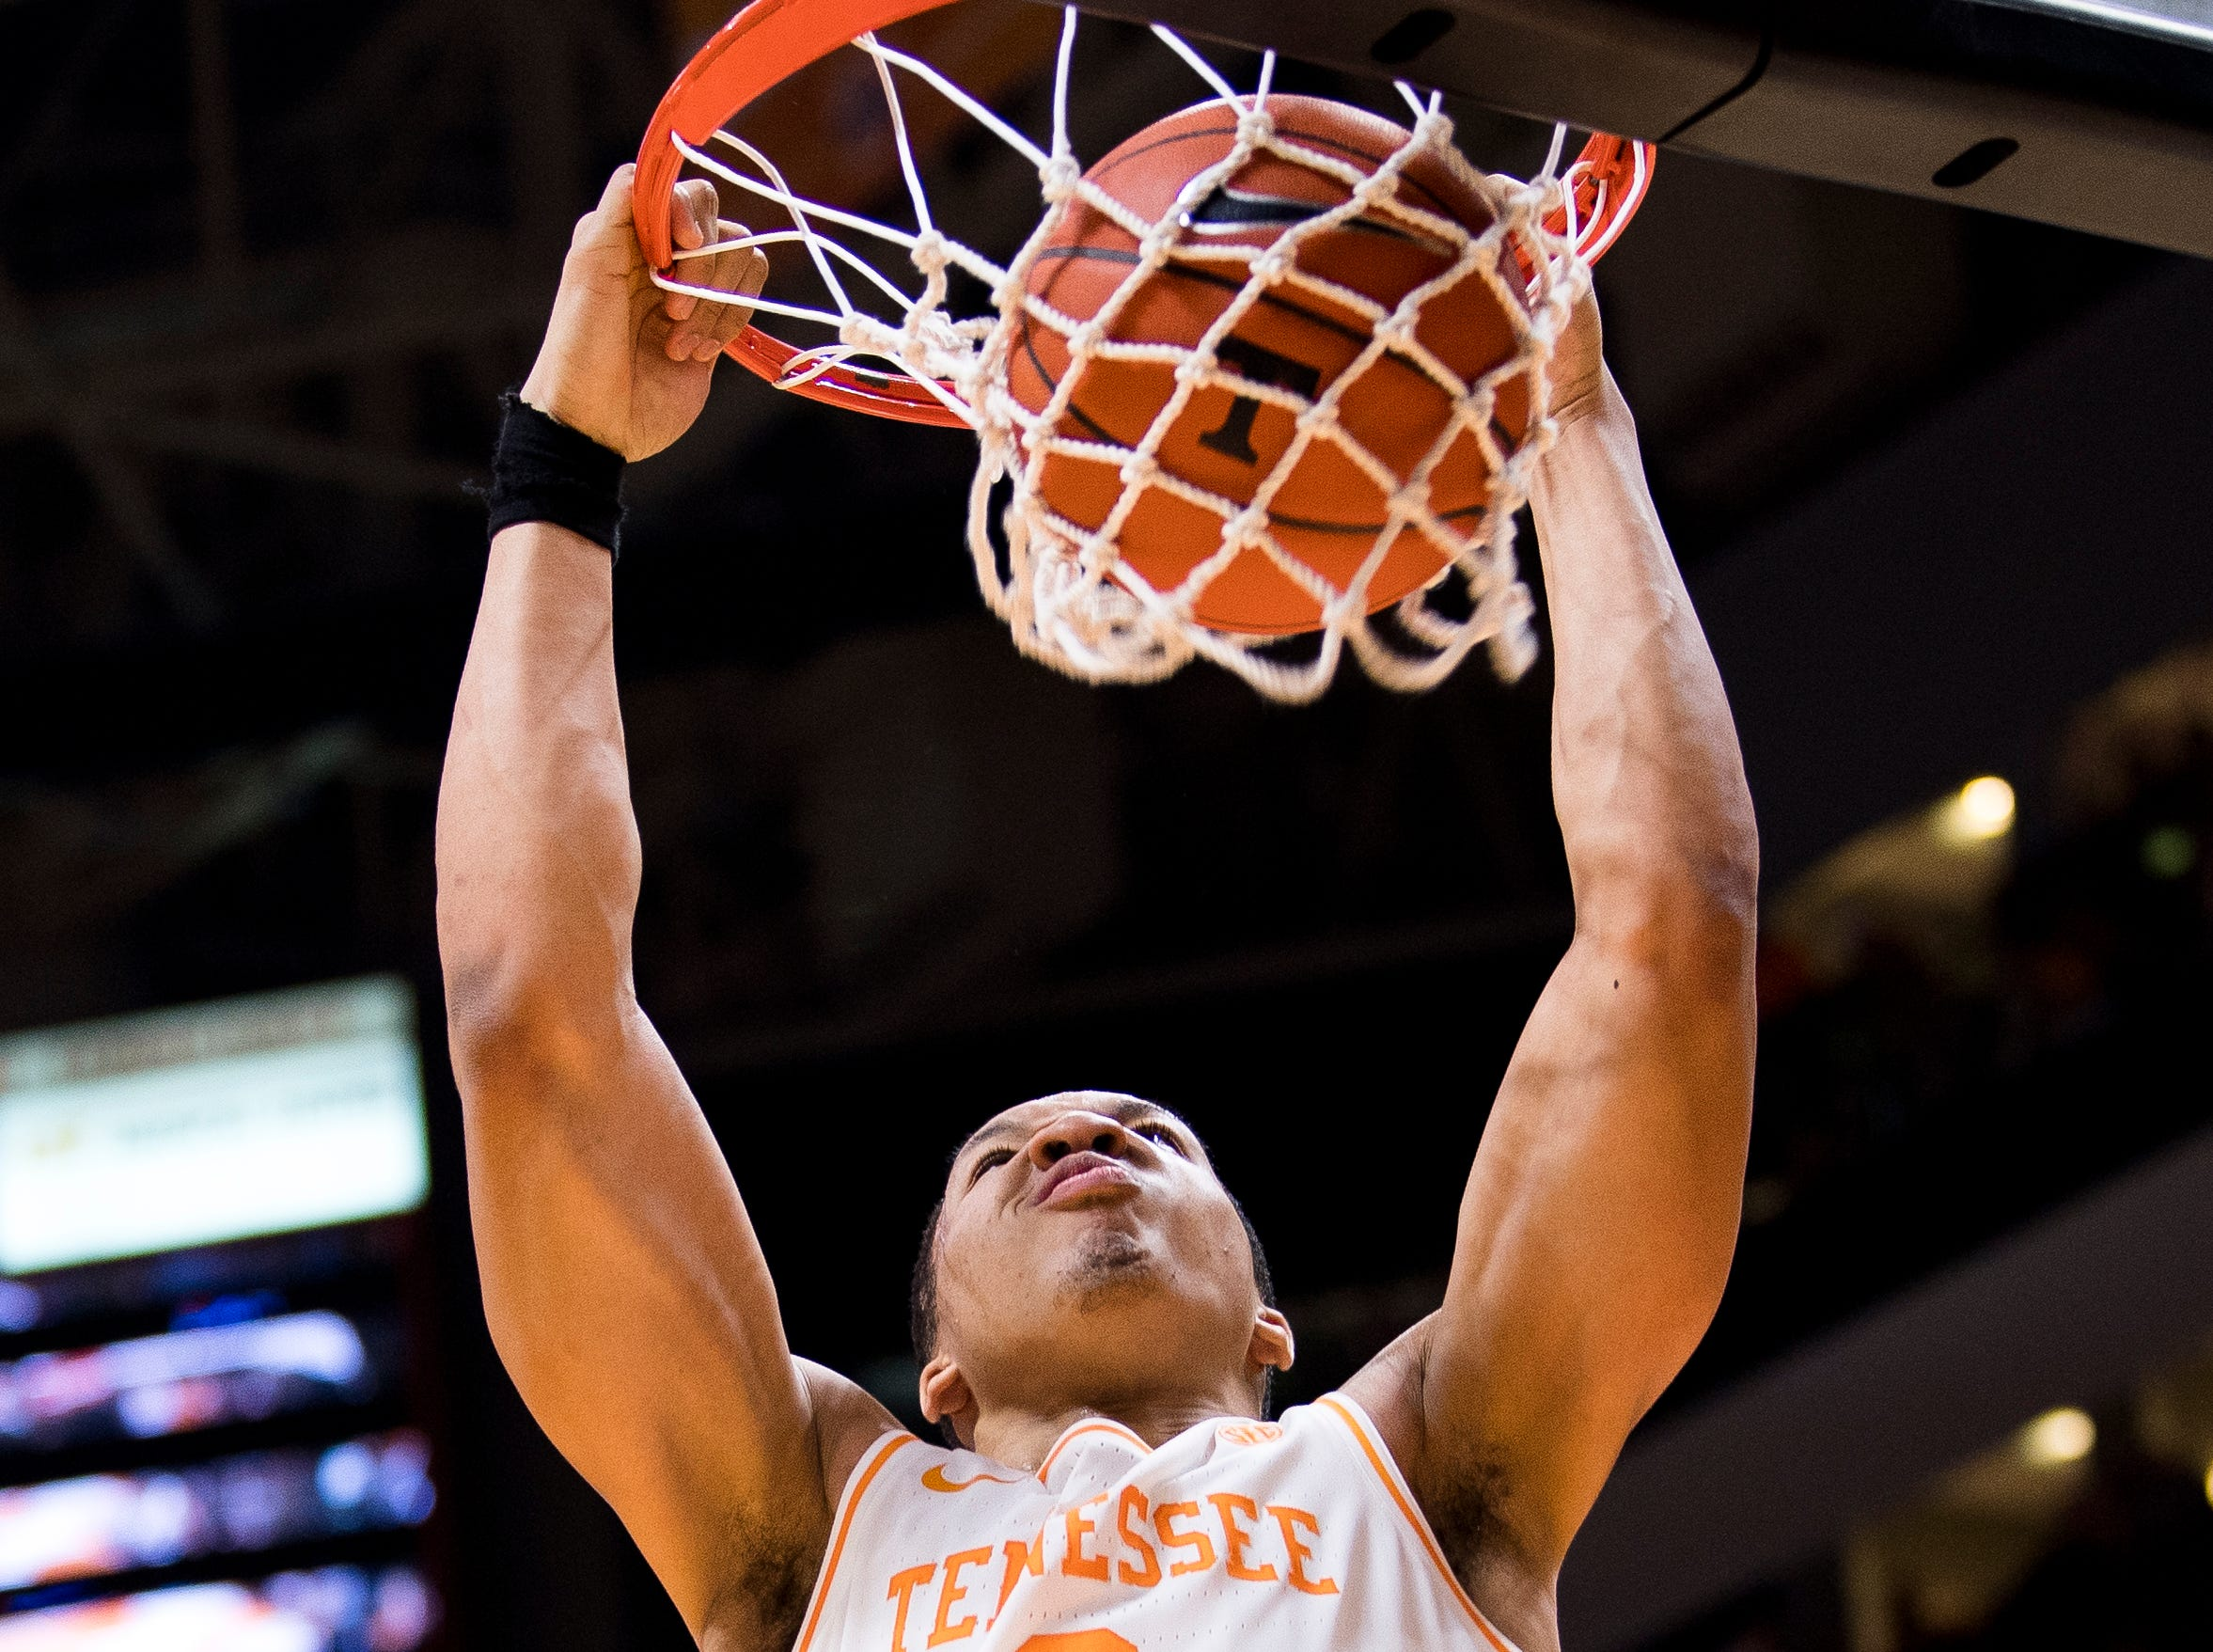 Tennessee forward Grant Williams (2) dunks the ball during the first half of Tennessee's home SEC conference game against Alabama at Thompson-Boling Arena in Knoxville on Saturday, January 19, 2019.